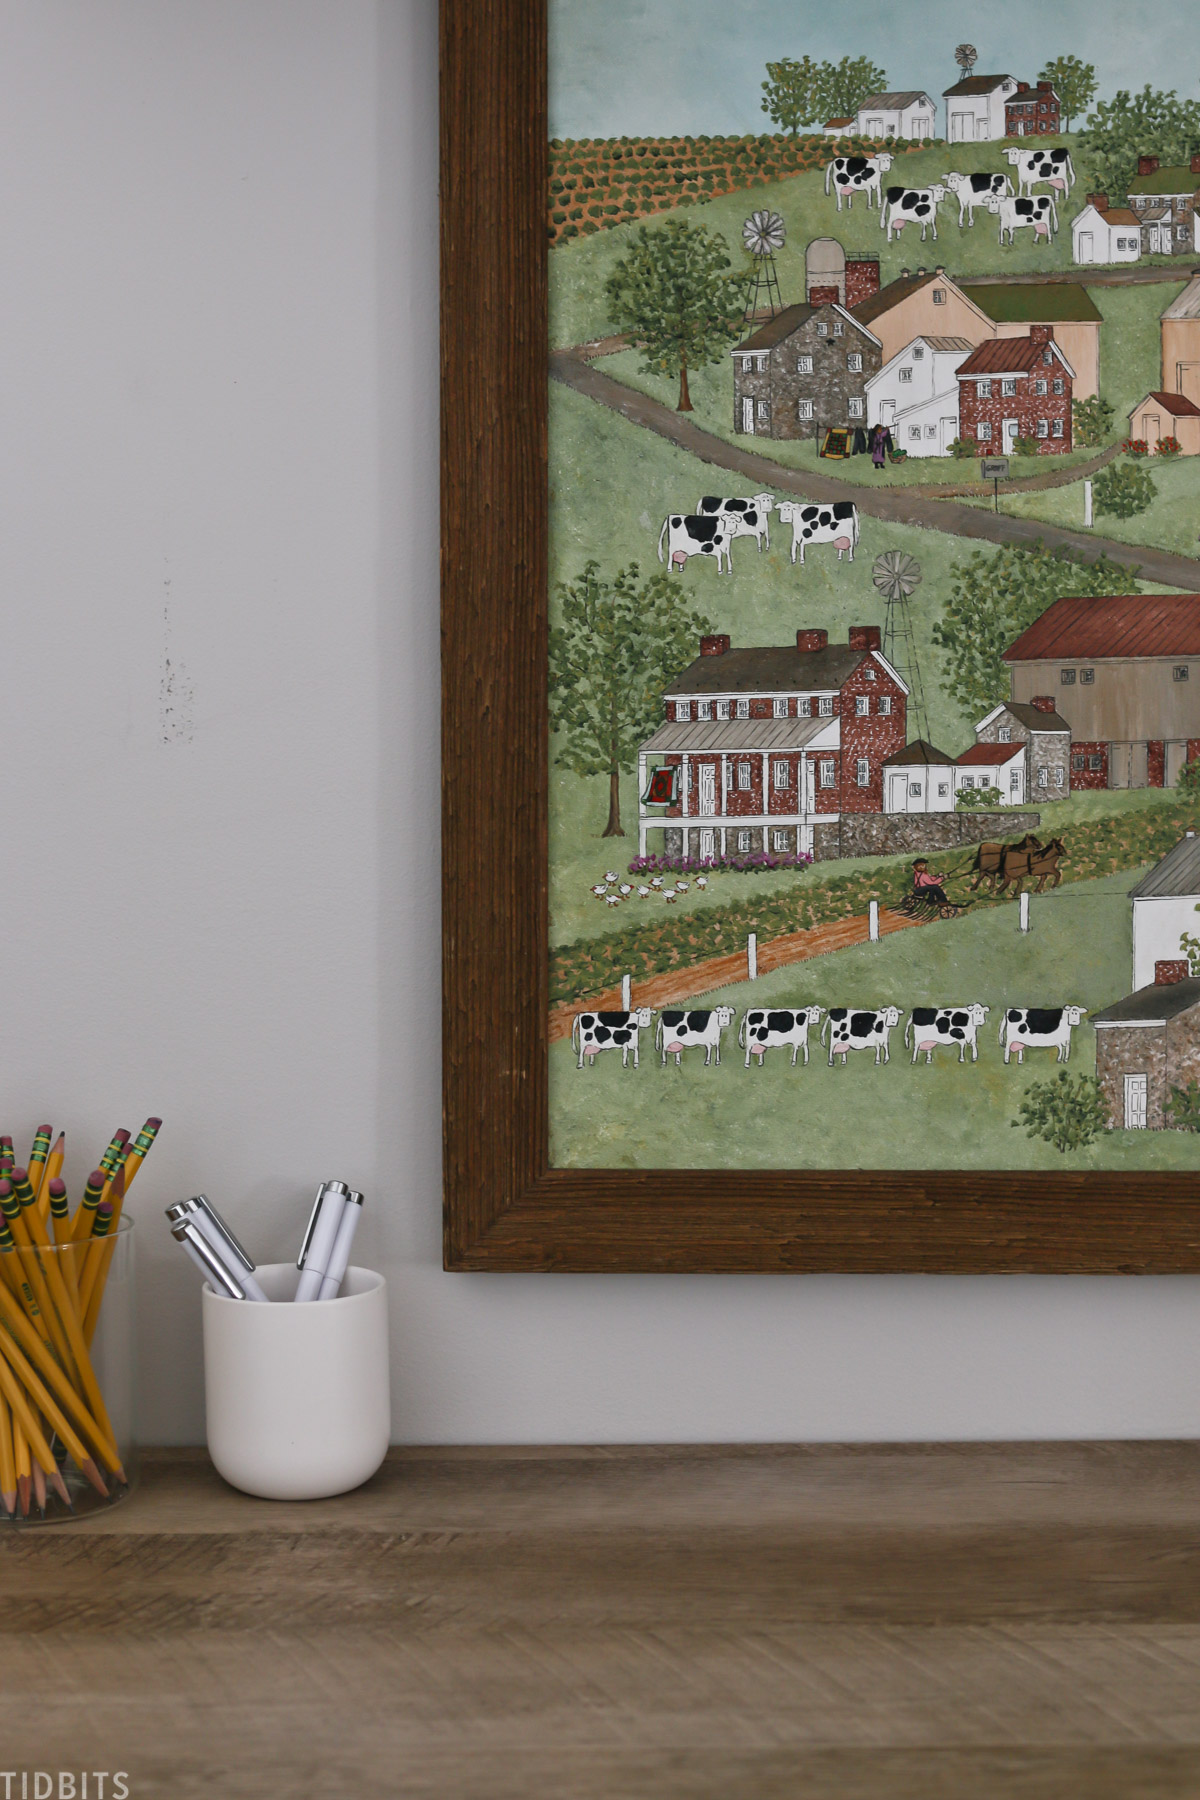 wall art depicting scene of farming communities with charming homes, roads, animals and people out enjoying the land